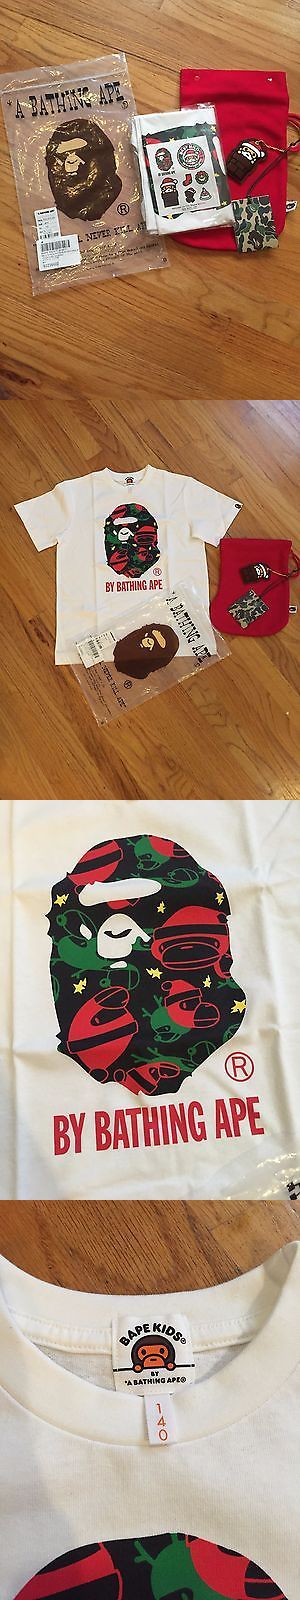 Tops and T-Shirts 155199: A Bathing Ape Bape Kids Christmas Milo Size 140 -> BUY IT NOW ONLY: $79 on eBay!